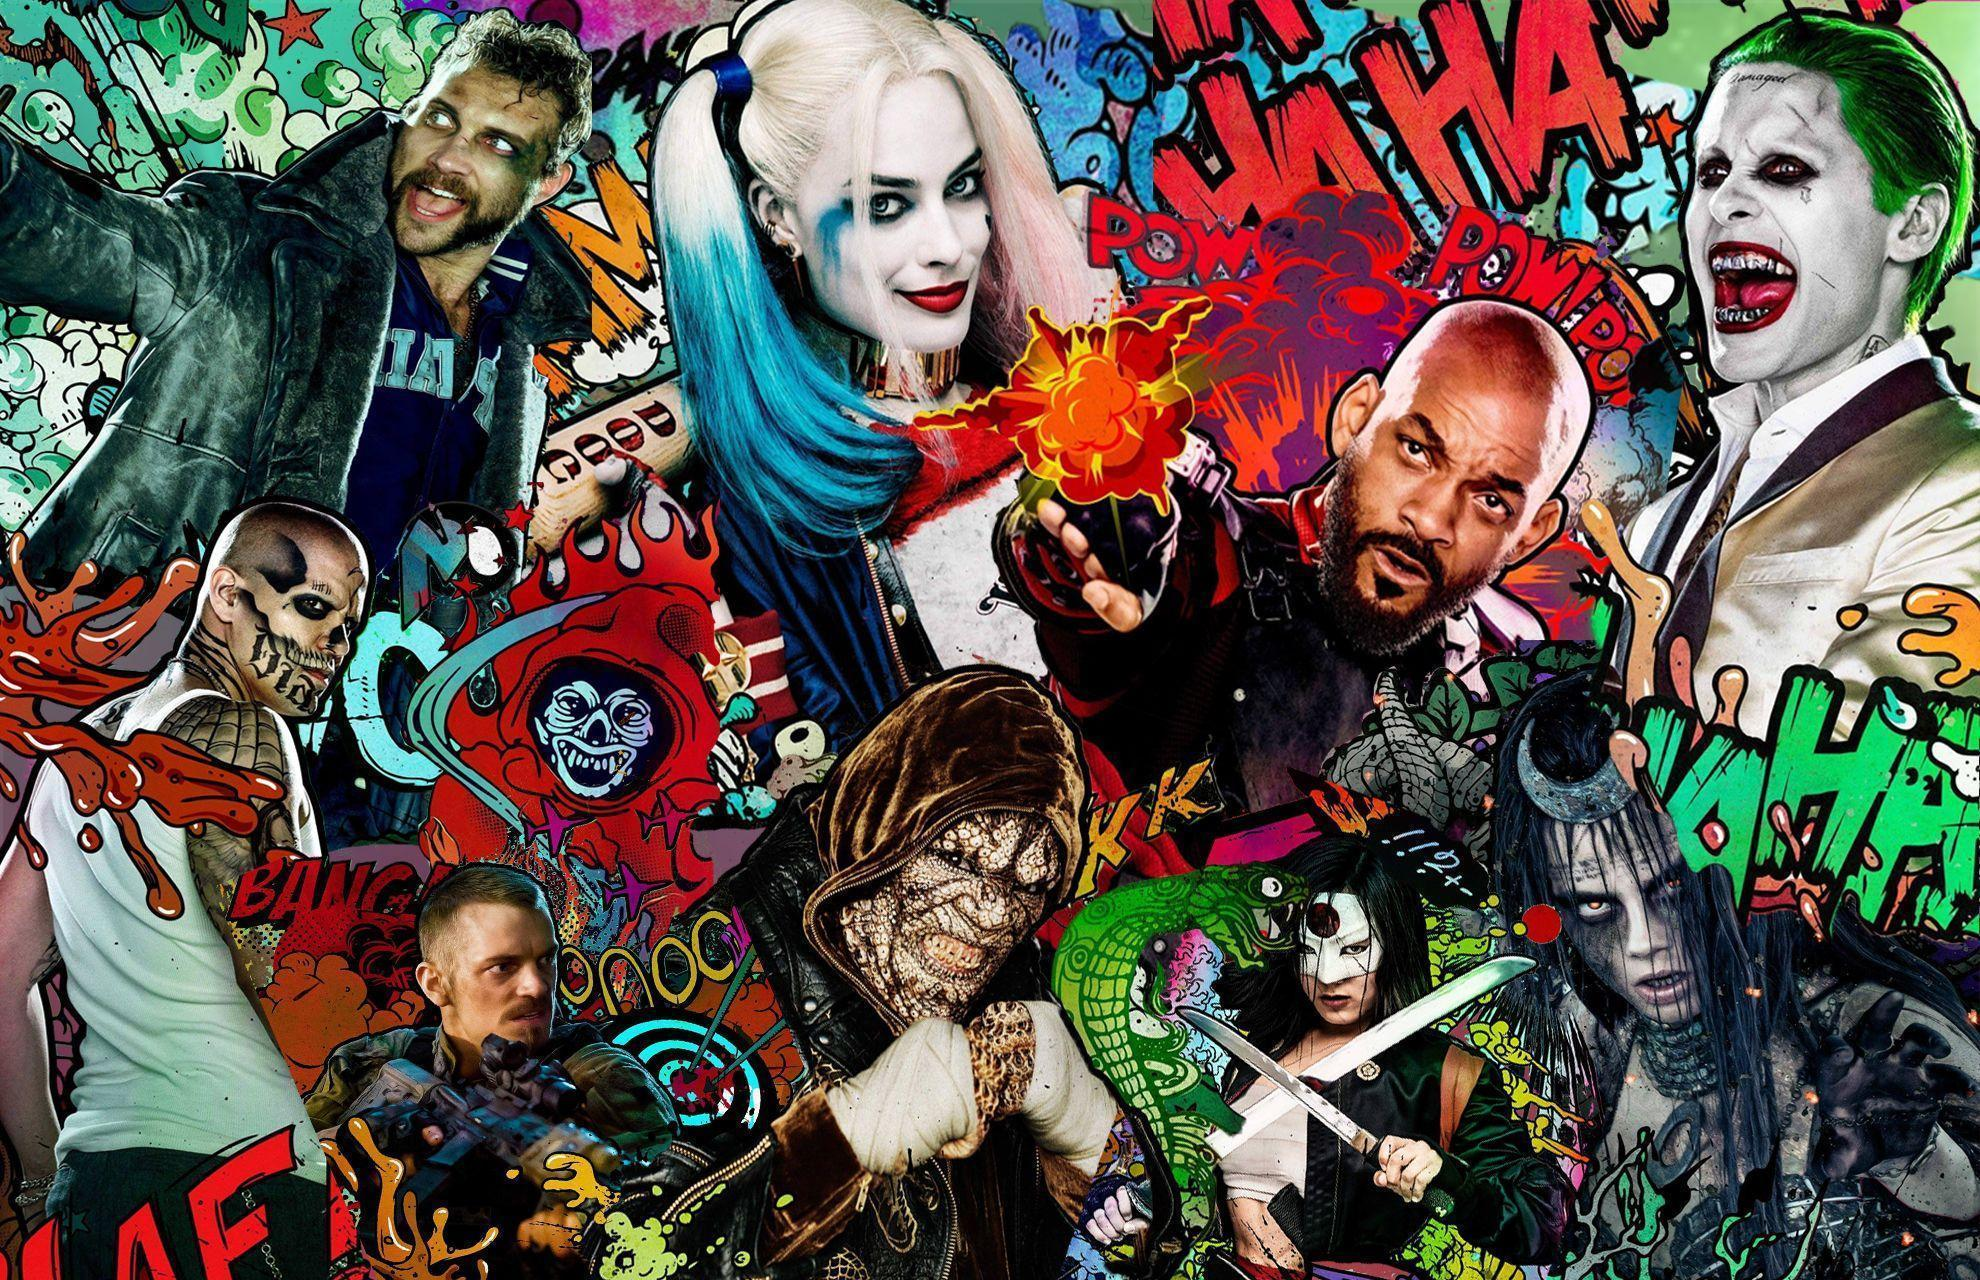 Recce Squad Hd Wallpapers: Suicide Squad HD Wallpapers